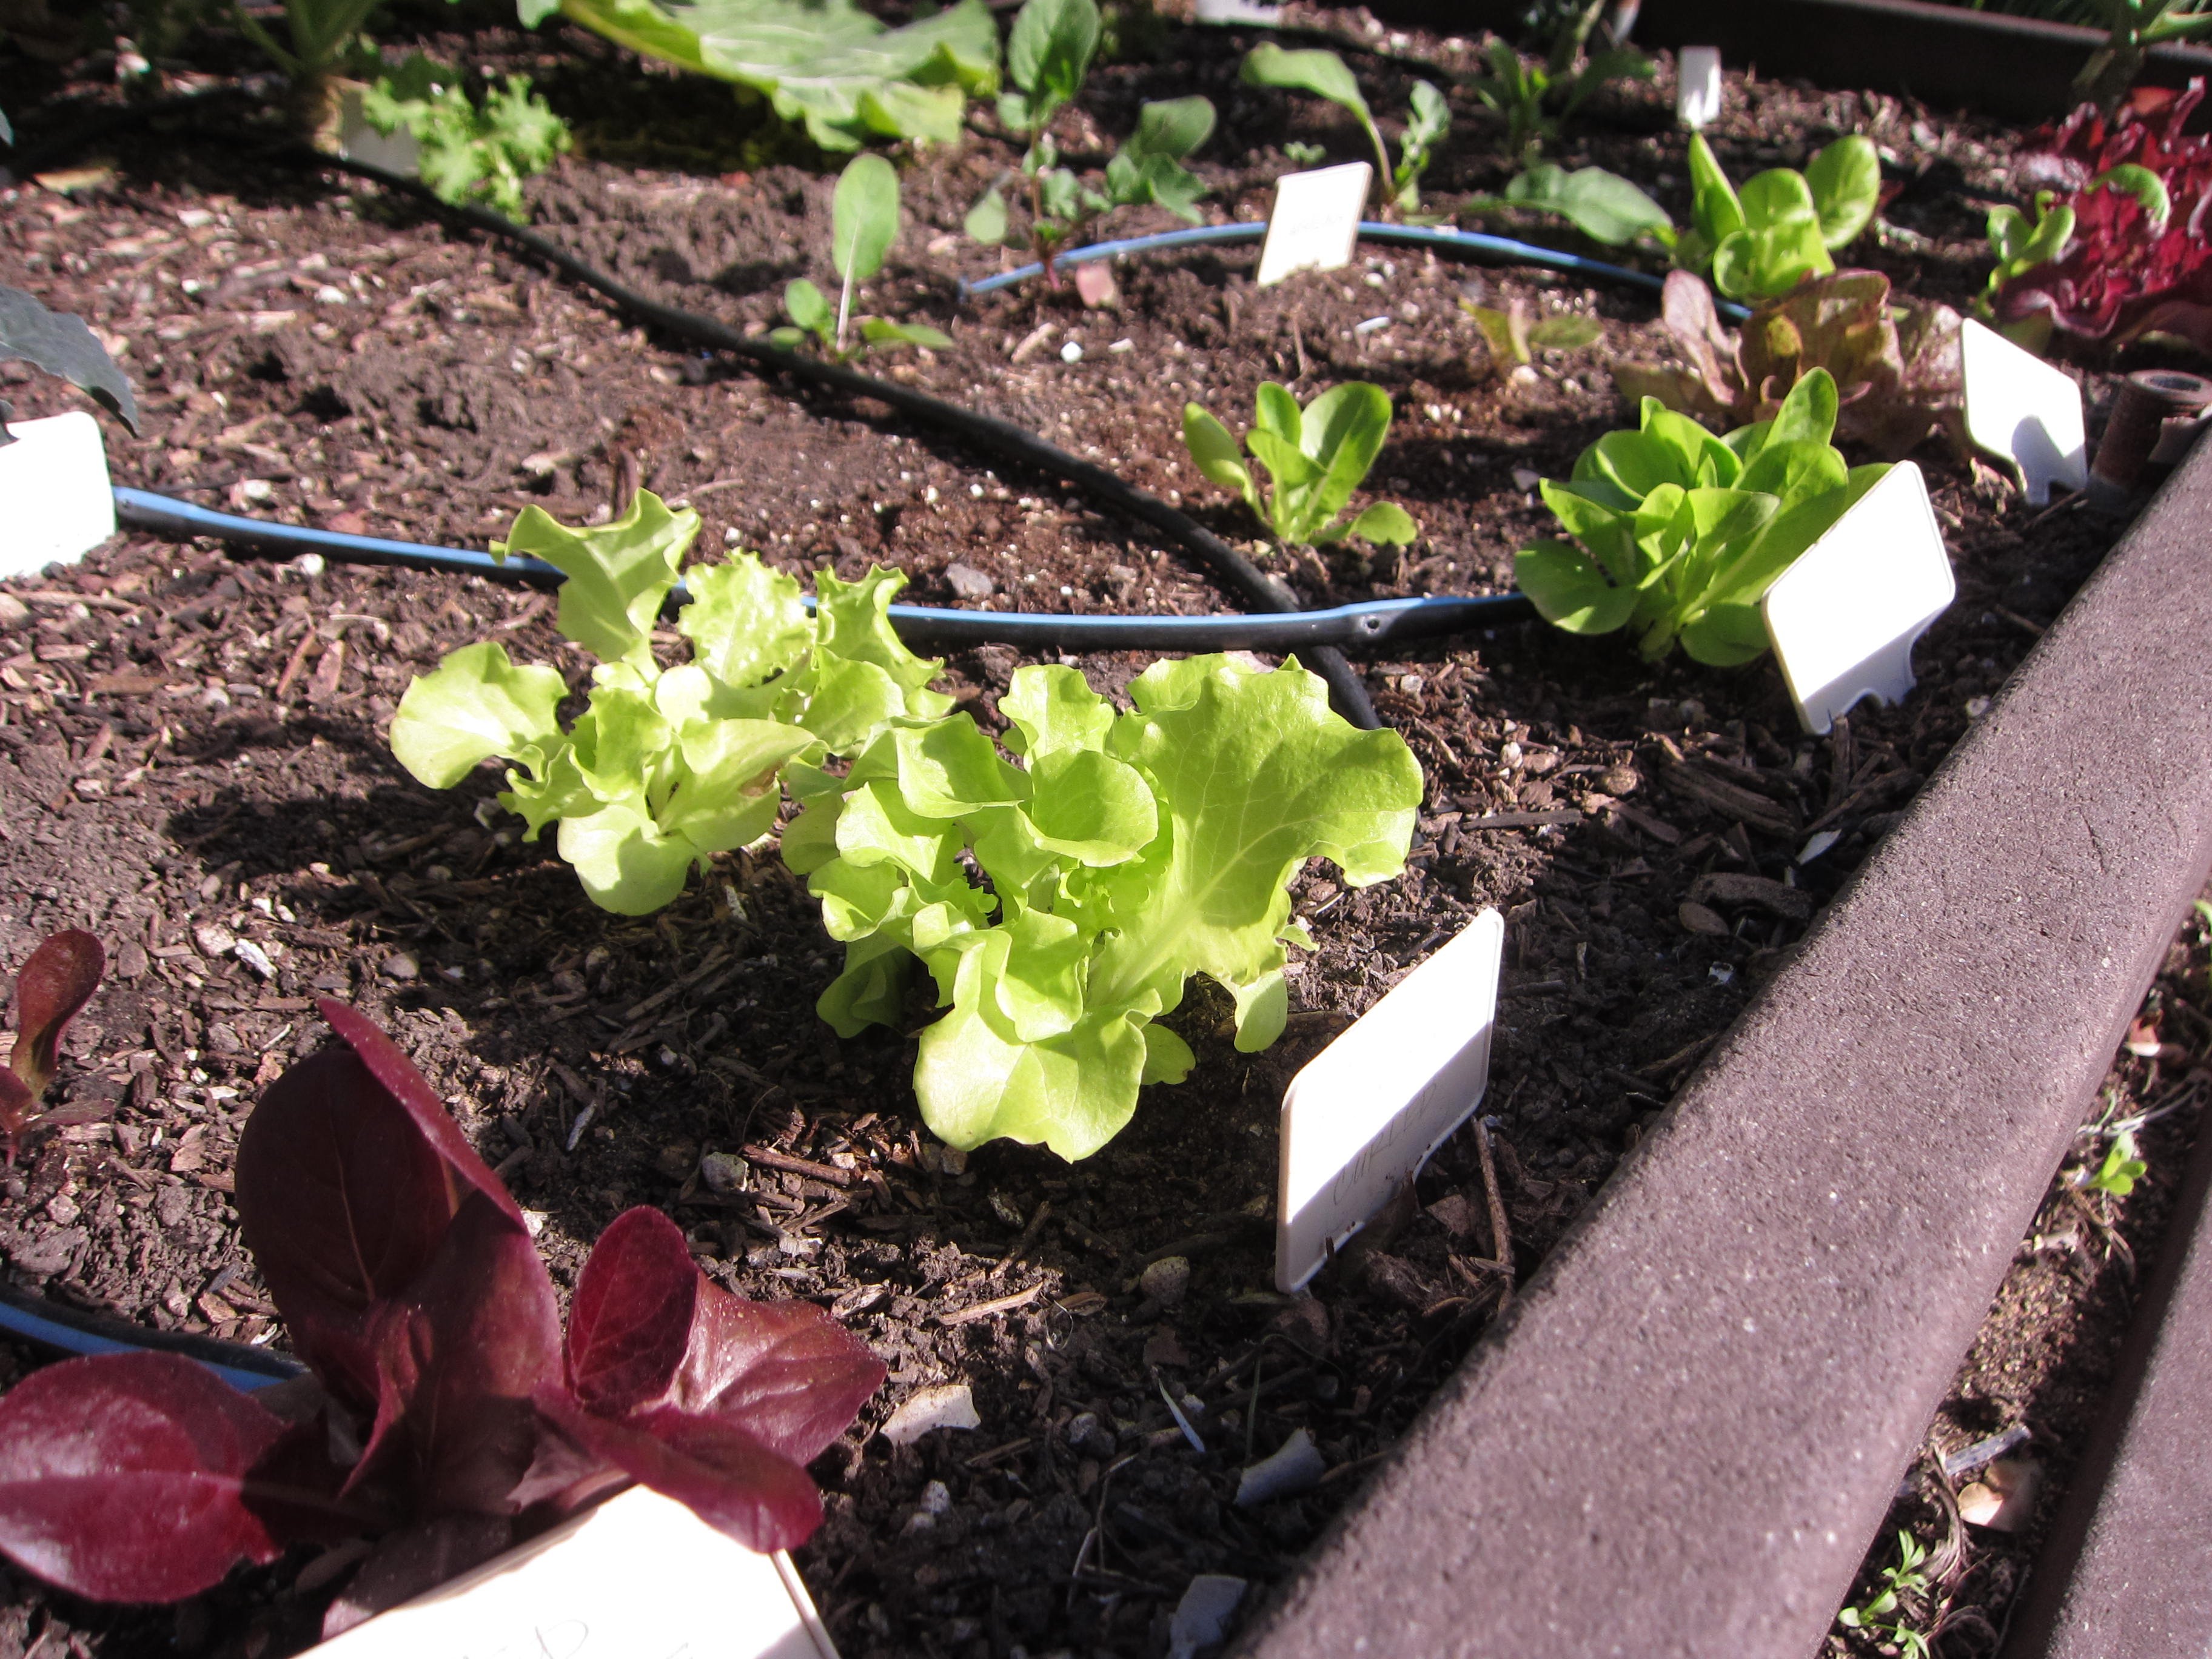 A spring crop of lettuces replace kale that grew in this bed.